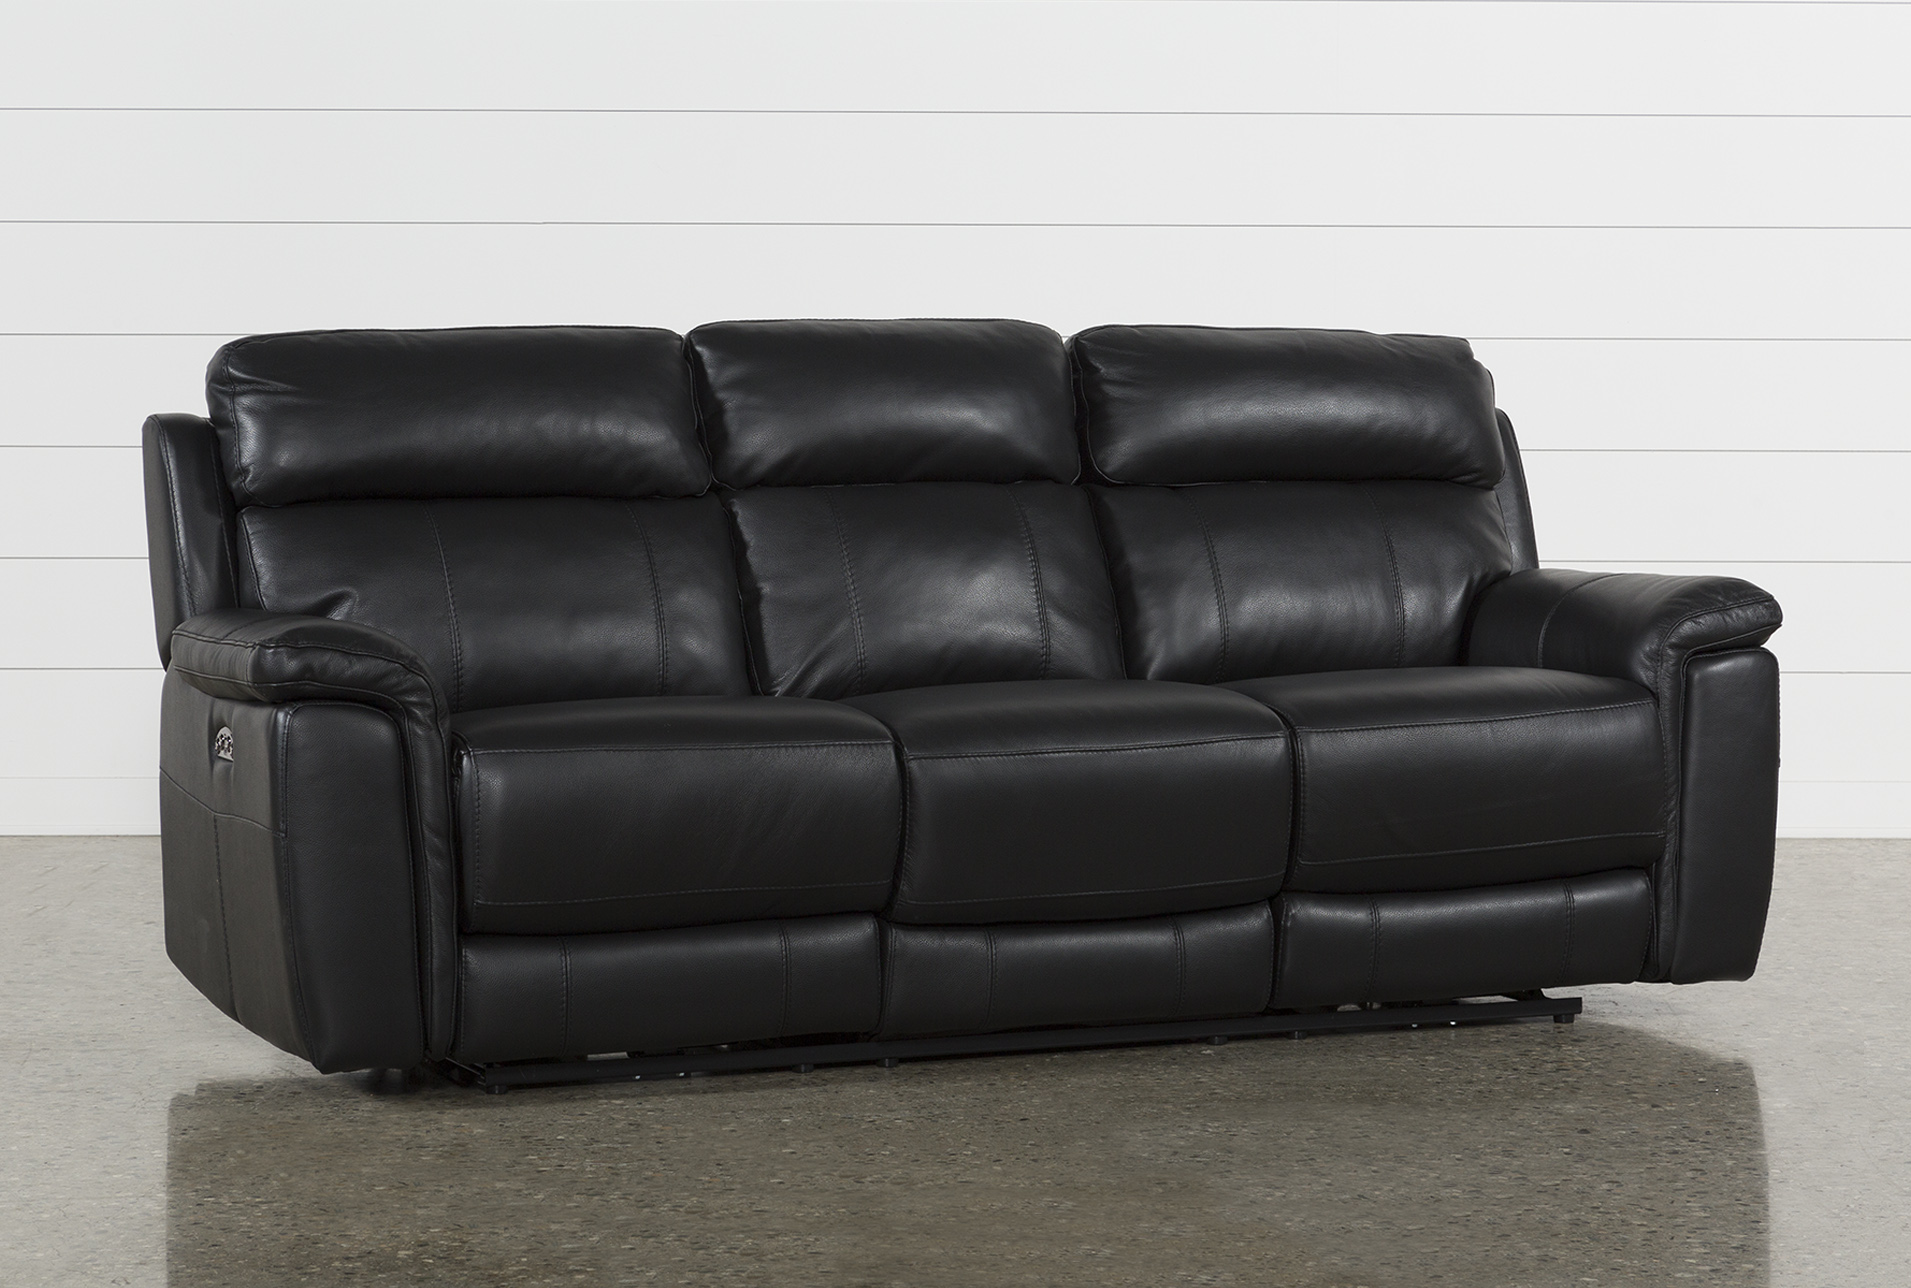 Merveilleux Dino Black Leather Power Reclining Sofa W/Power Headrest U0026amp; Usb (Qty: 1)  Has Been Successfully Added To Your Cart.